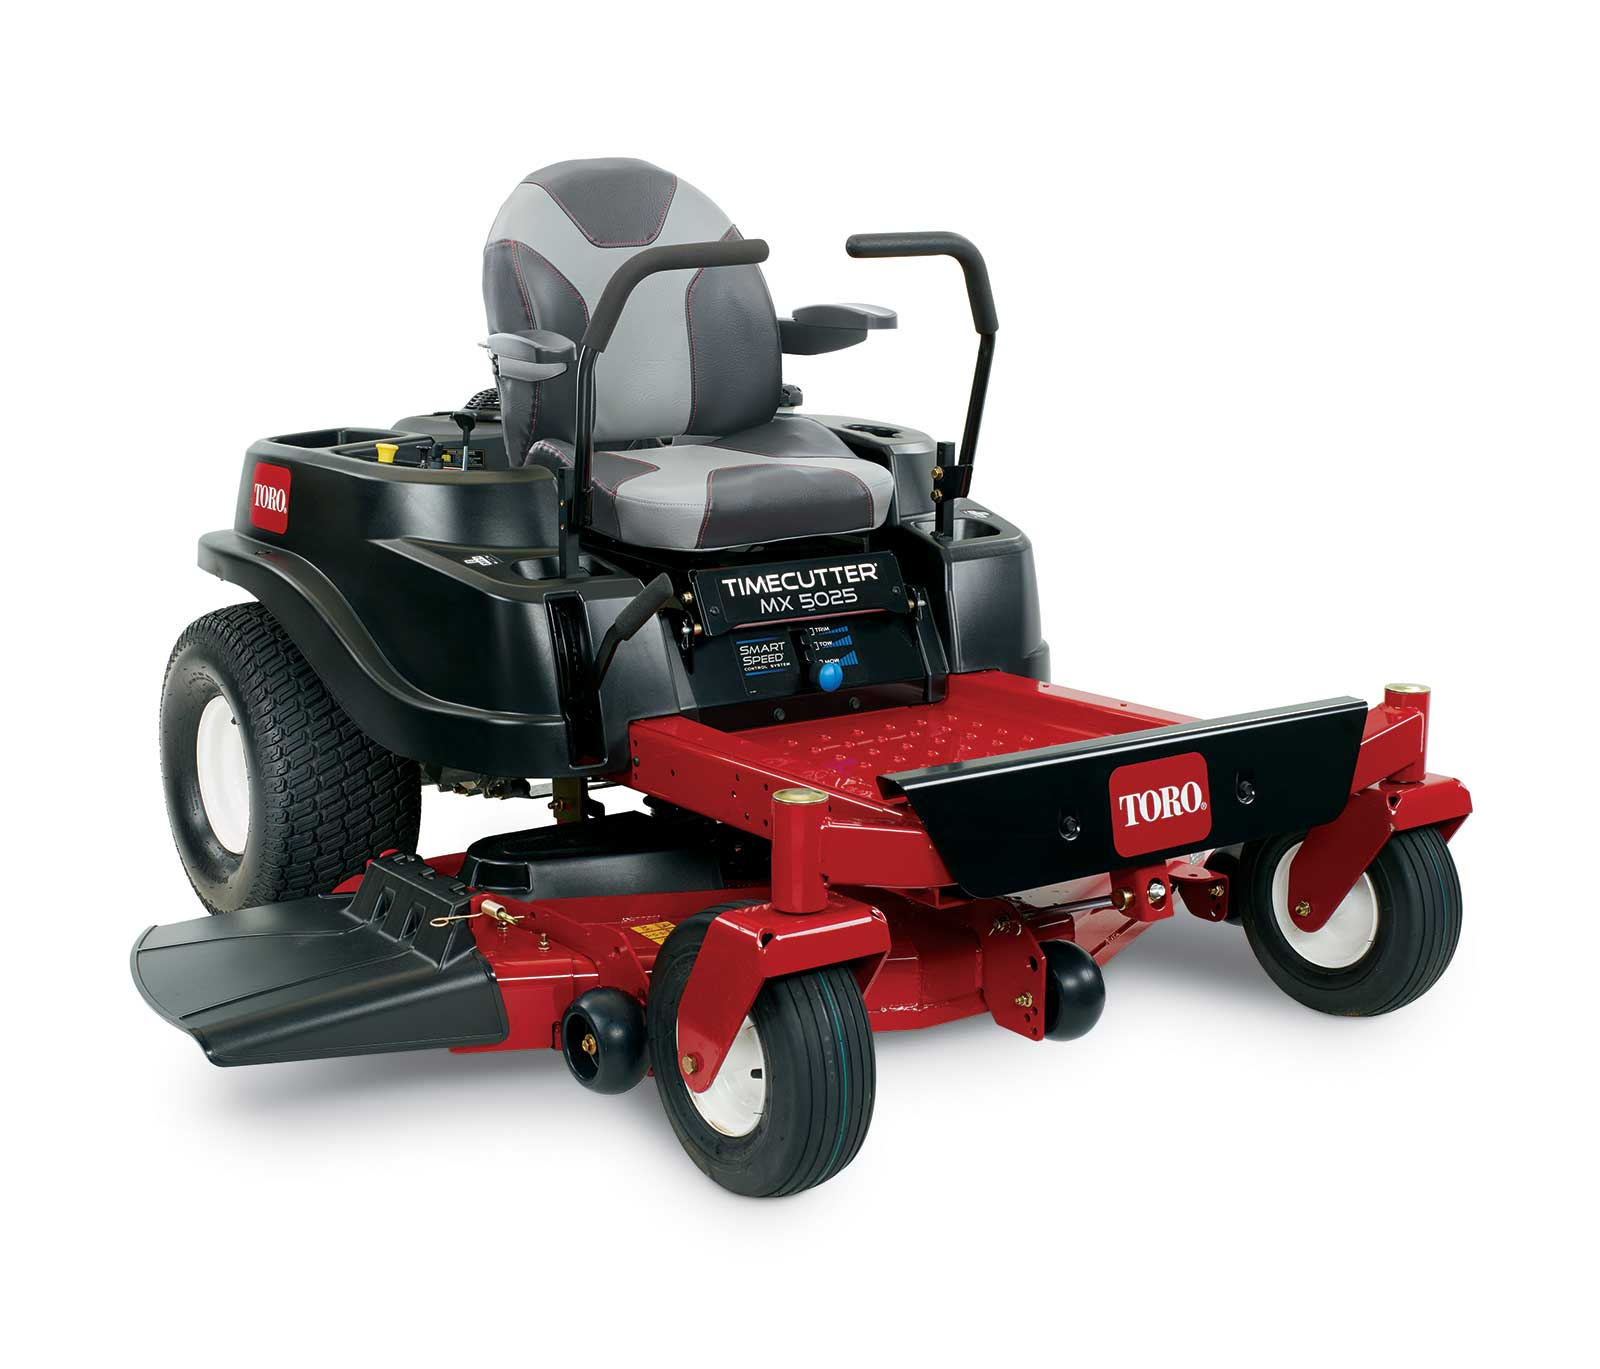 hight resolution of 50 timecutter mx5025 zero turn lawn mower torothis review is from50 127 cm timecutter mx5025 74776